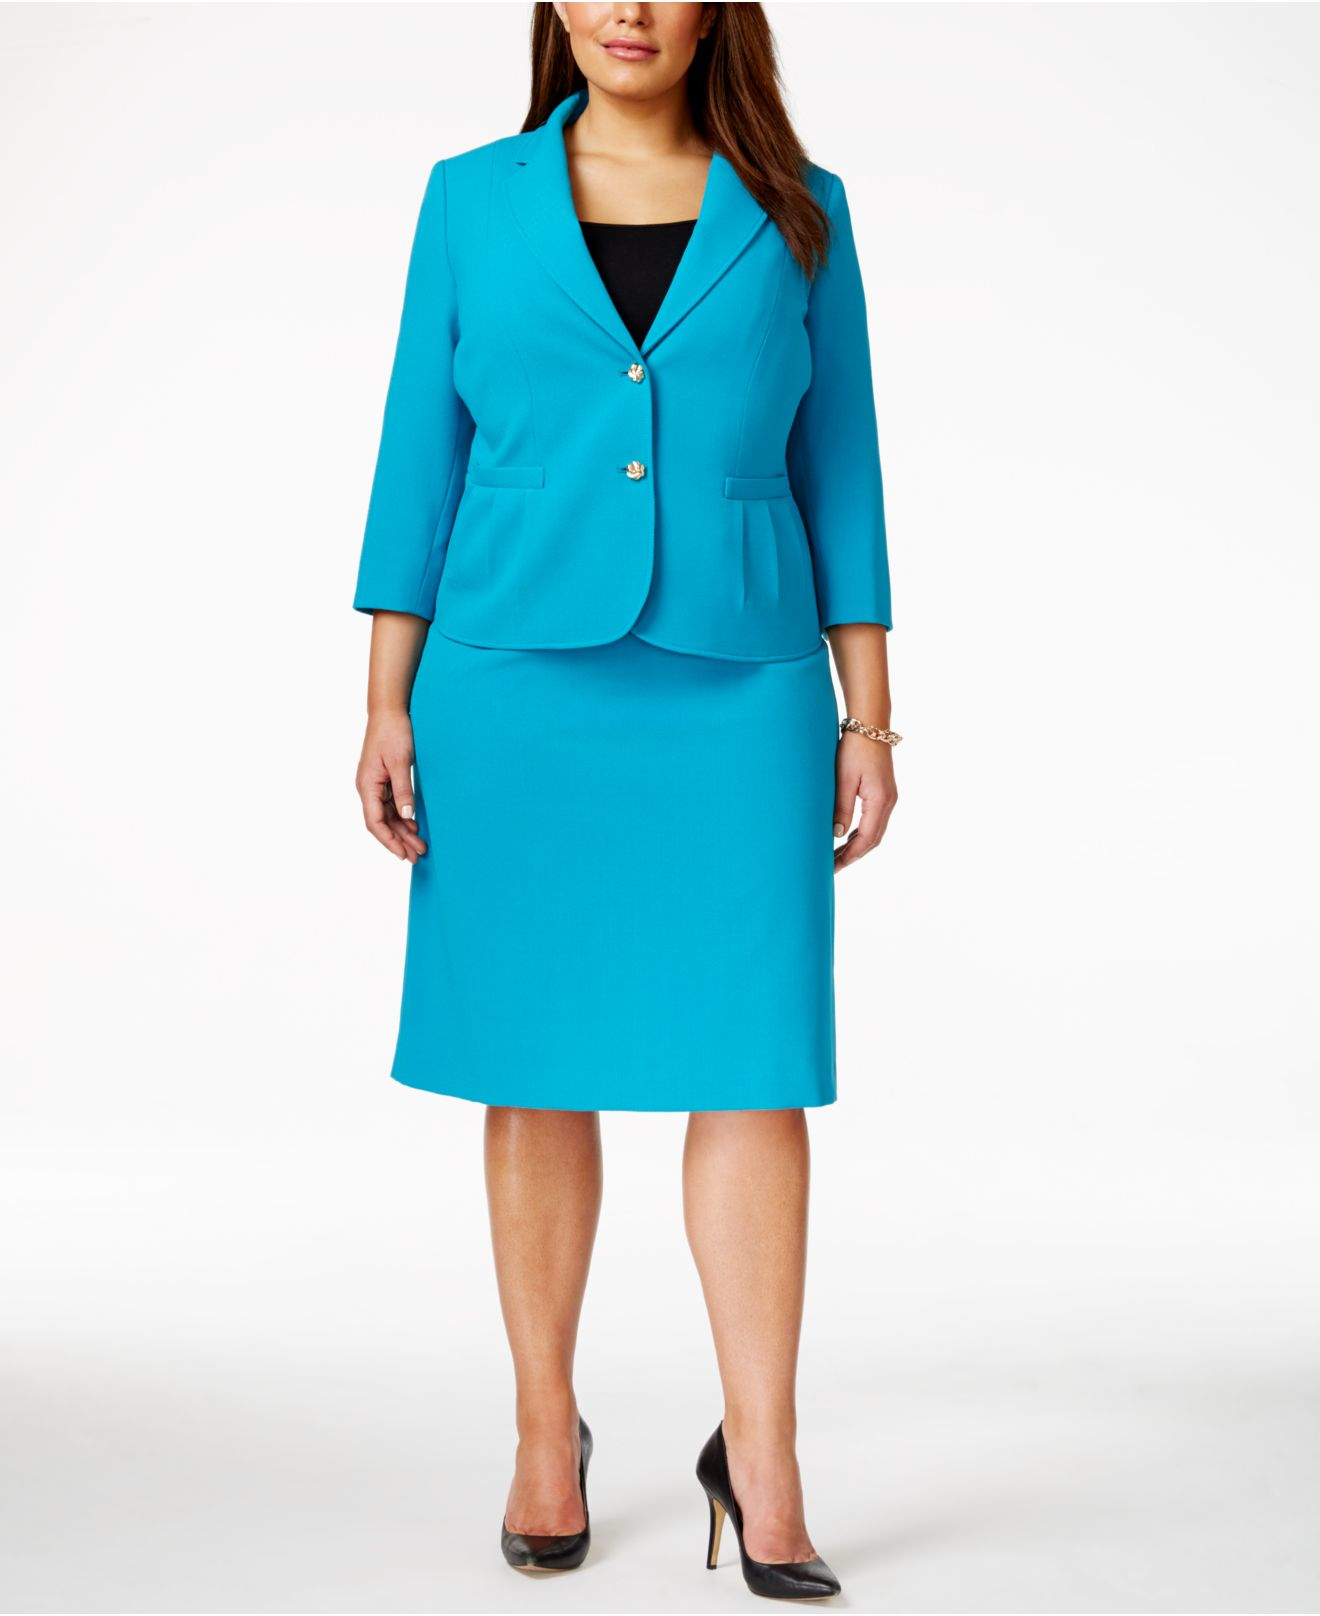 tahari plus size notched collar jacket skirt suit in blue